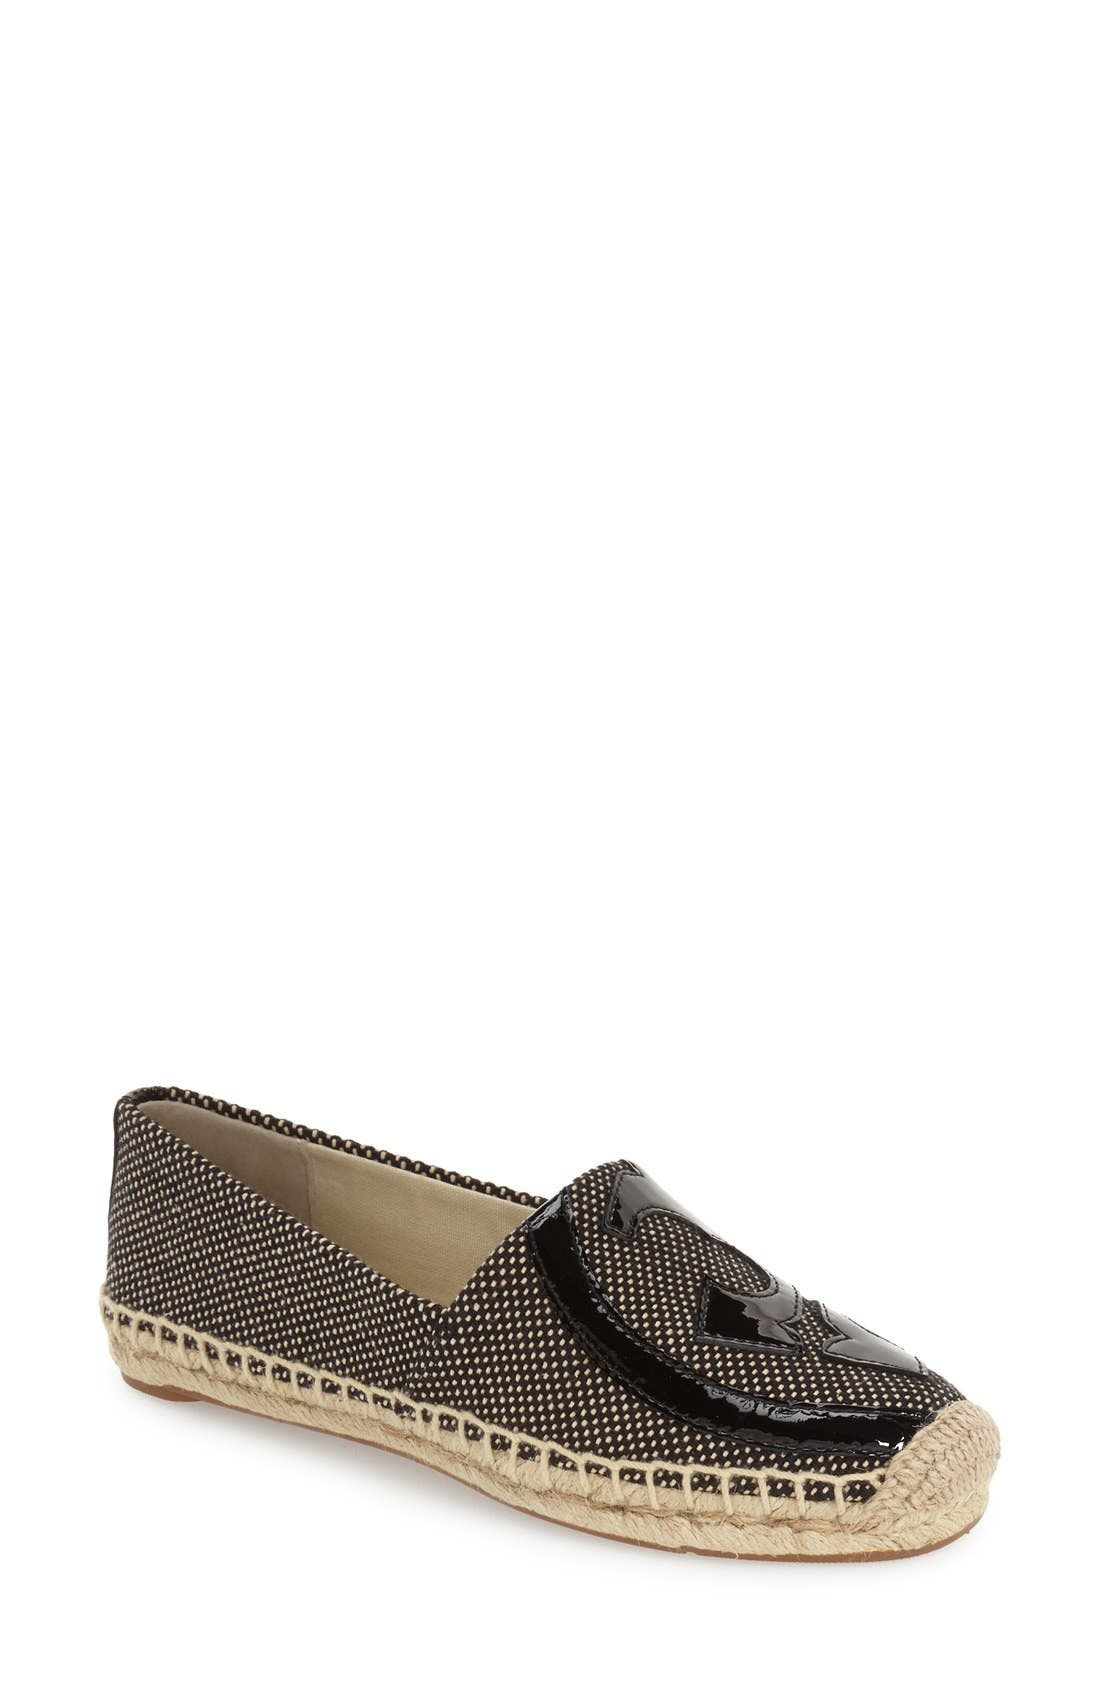 Alternate Image 1 Selected - Tory Burch 'Lonnie' Espadrille Flat (Women)